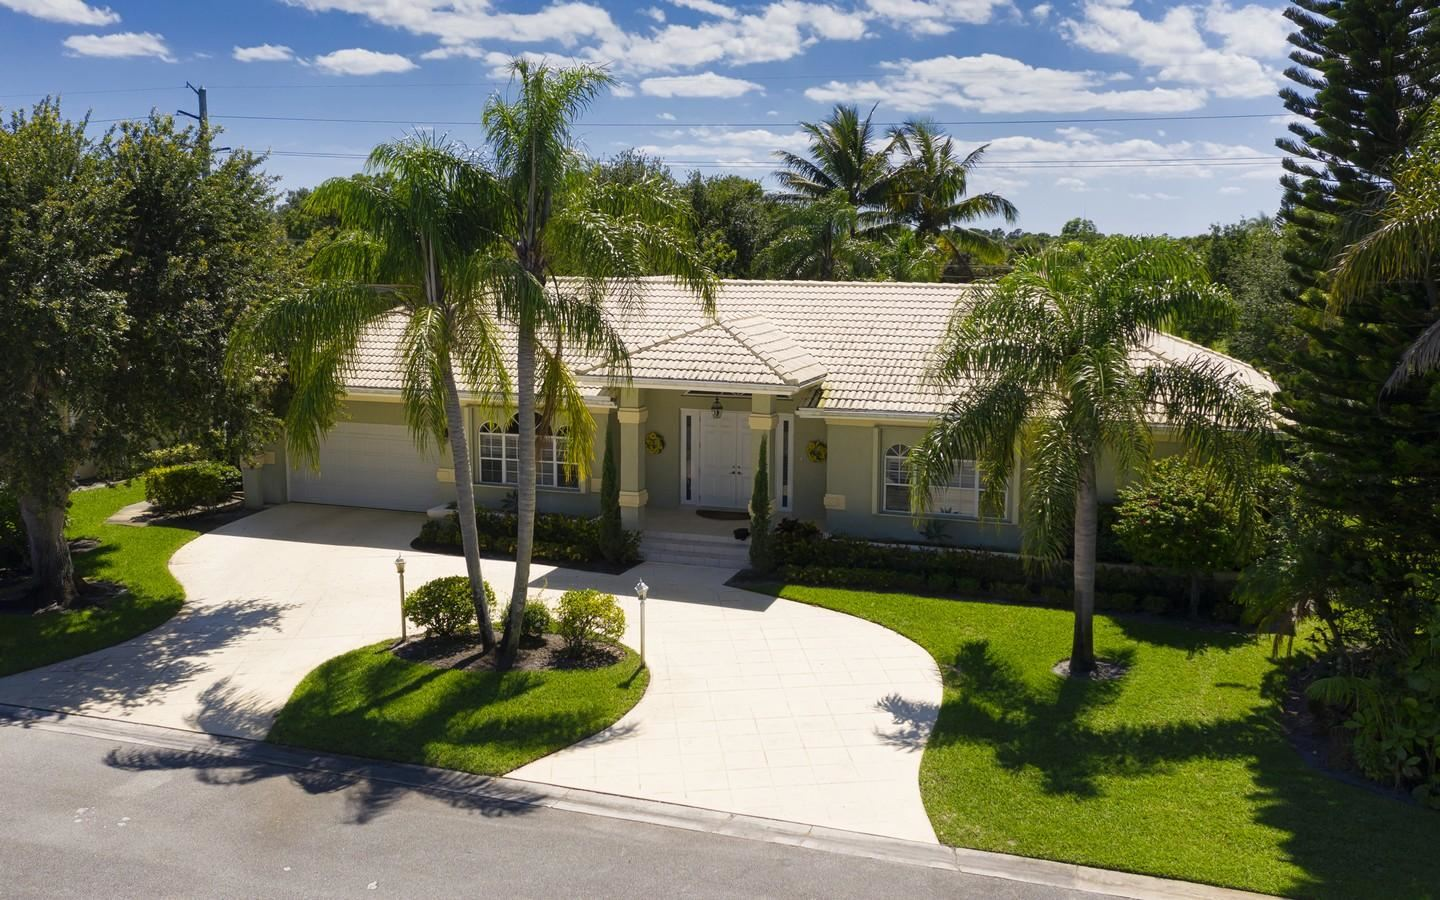 8180 SE Woodlake Lane, Hobe Sound, FL 33455 - #: RX-10620872